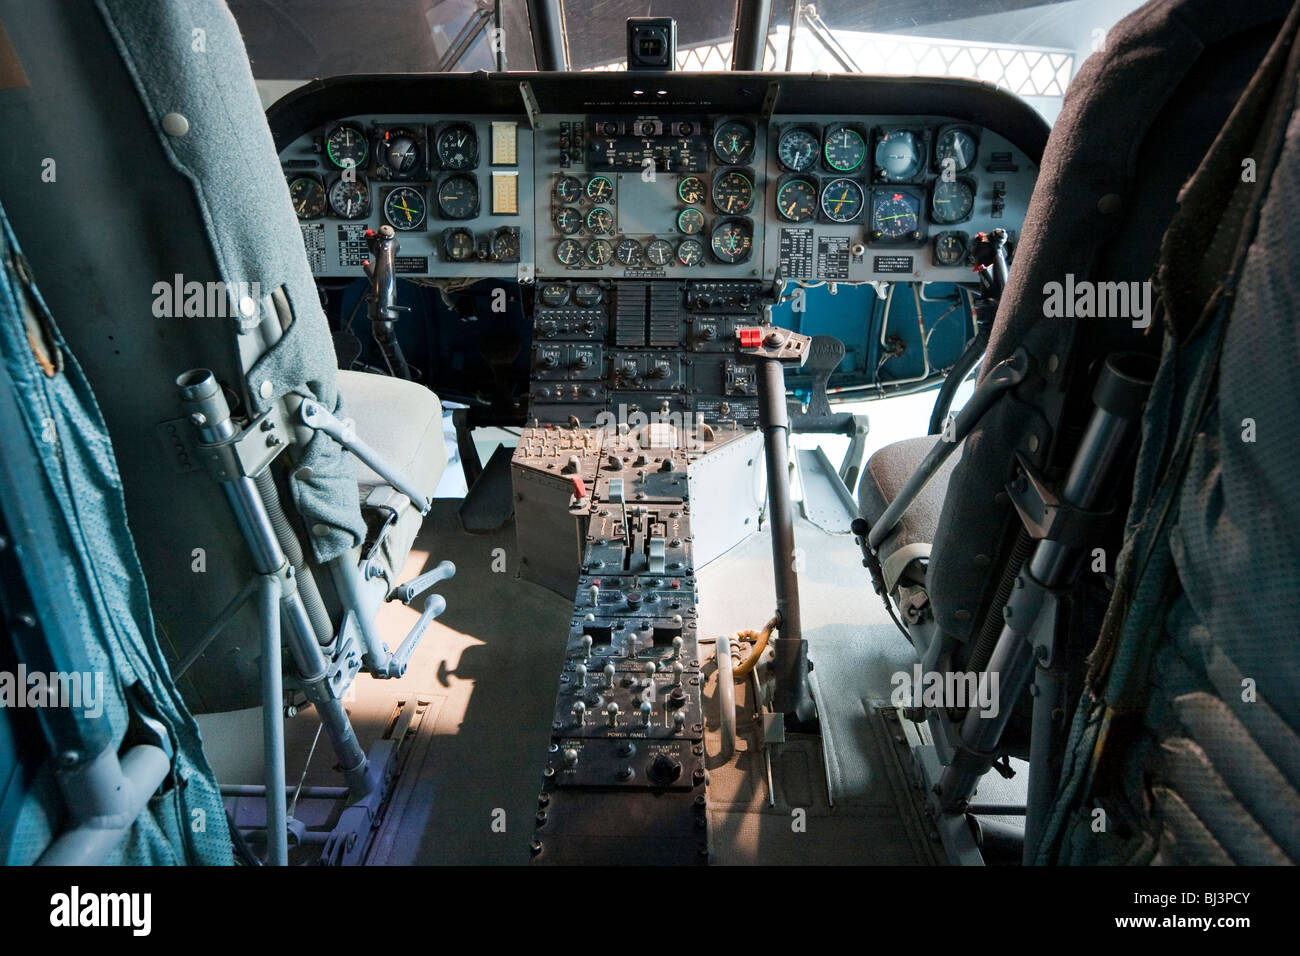 Japan, Kobe, Maritime Museum. Interior of cockpit of Chinnock helicopter - Stock Image